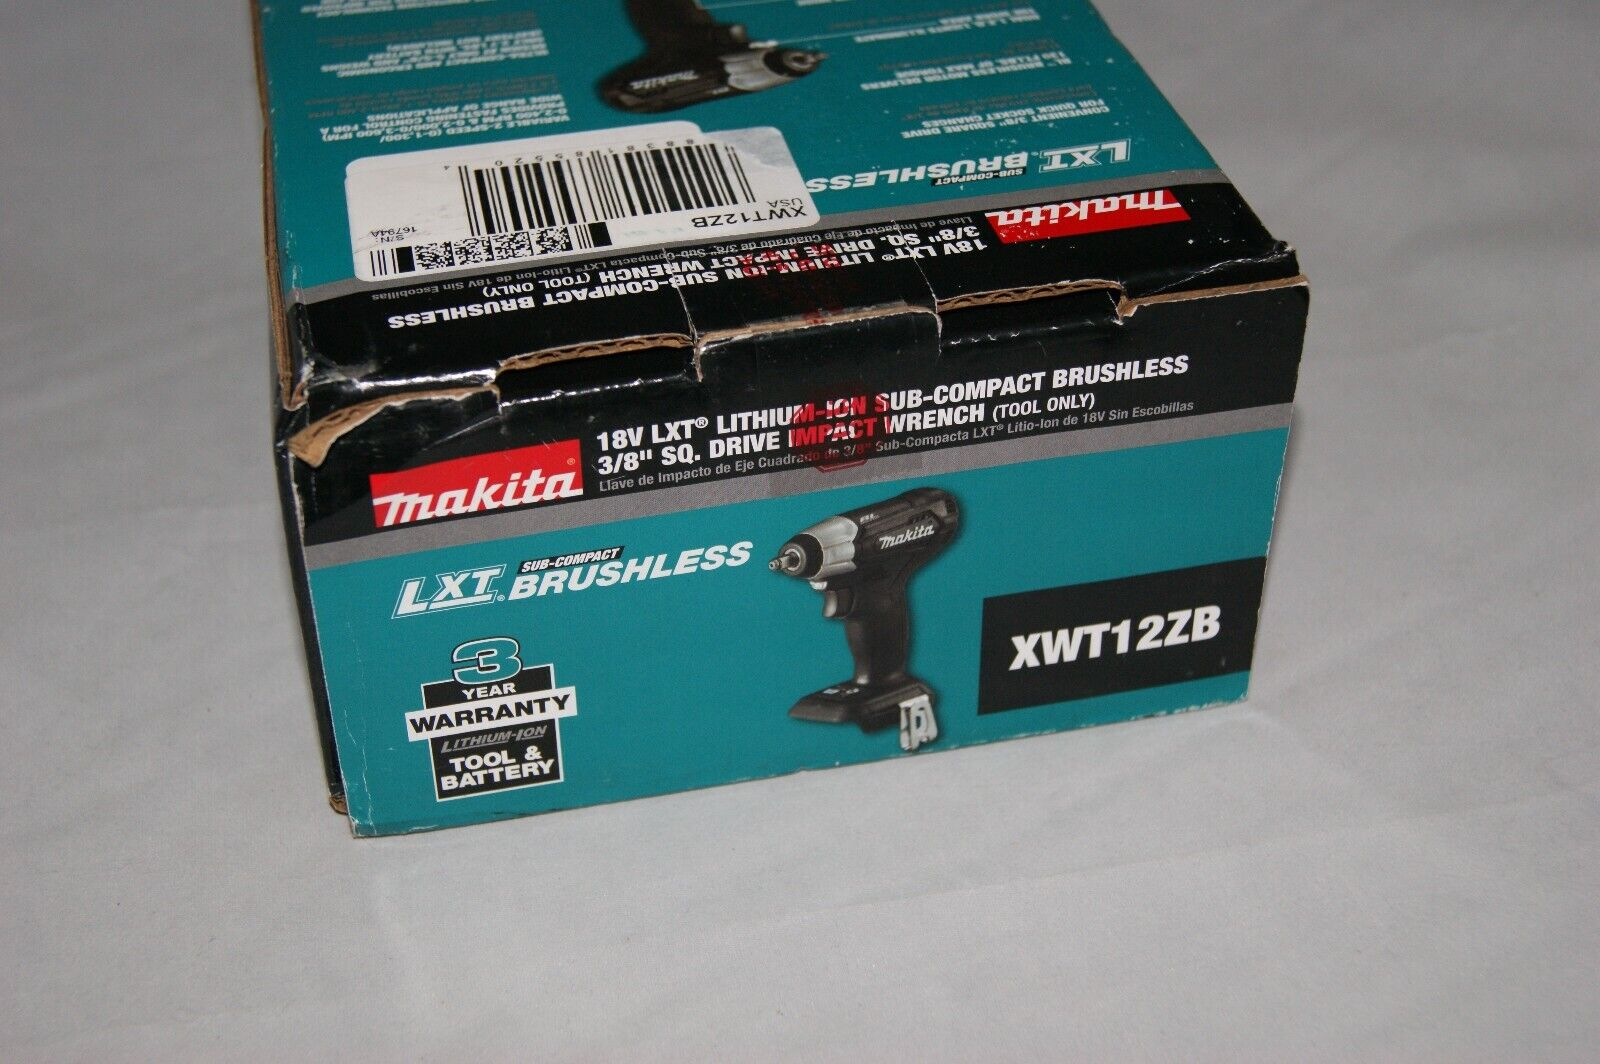 Makita XWT12ZB 18V LXT Lithium-Ion Sub-Compact Brushless Cor